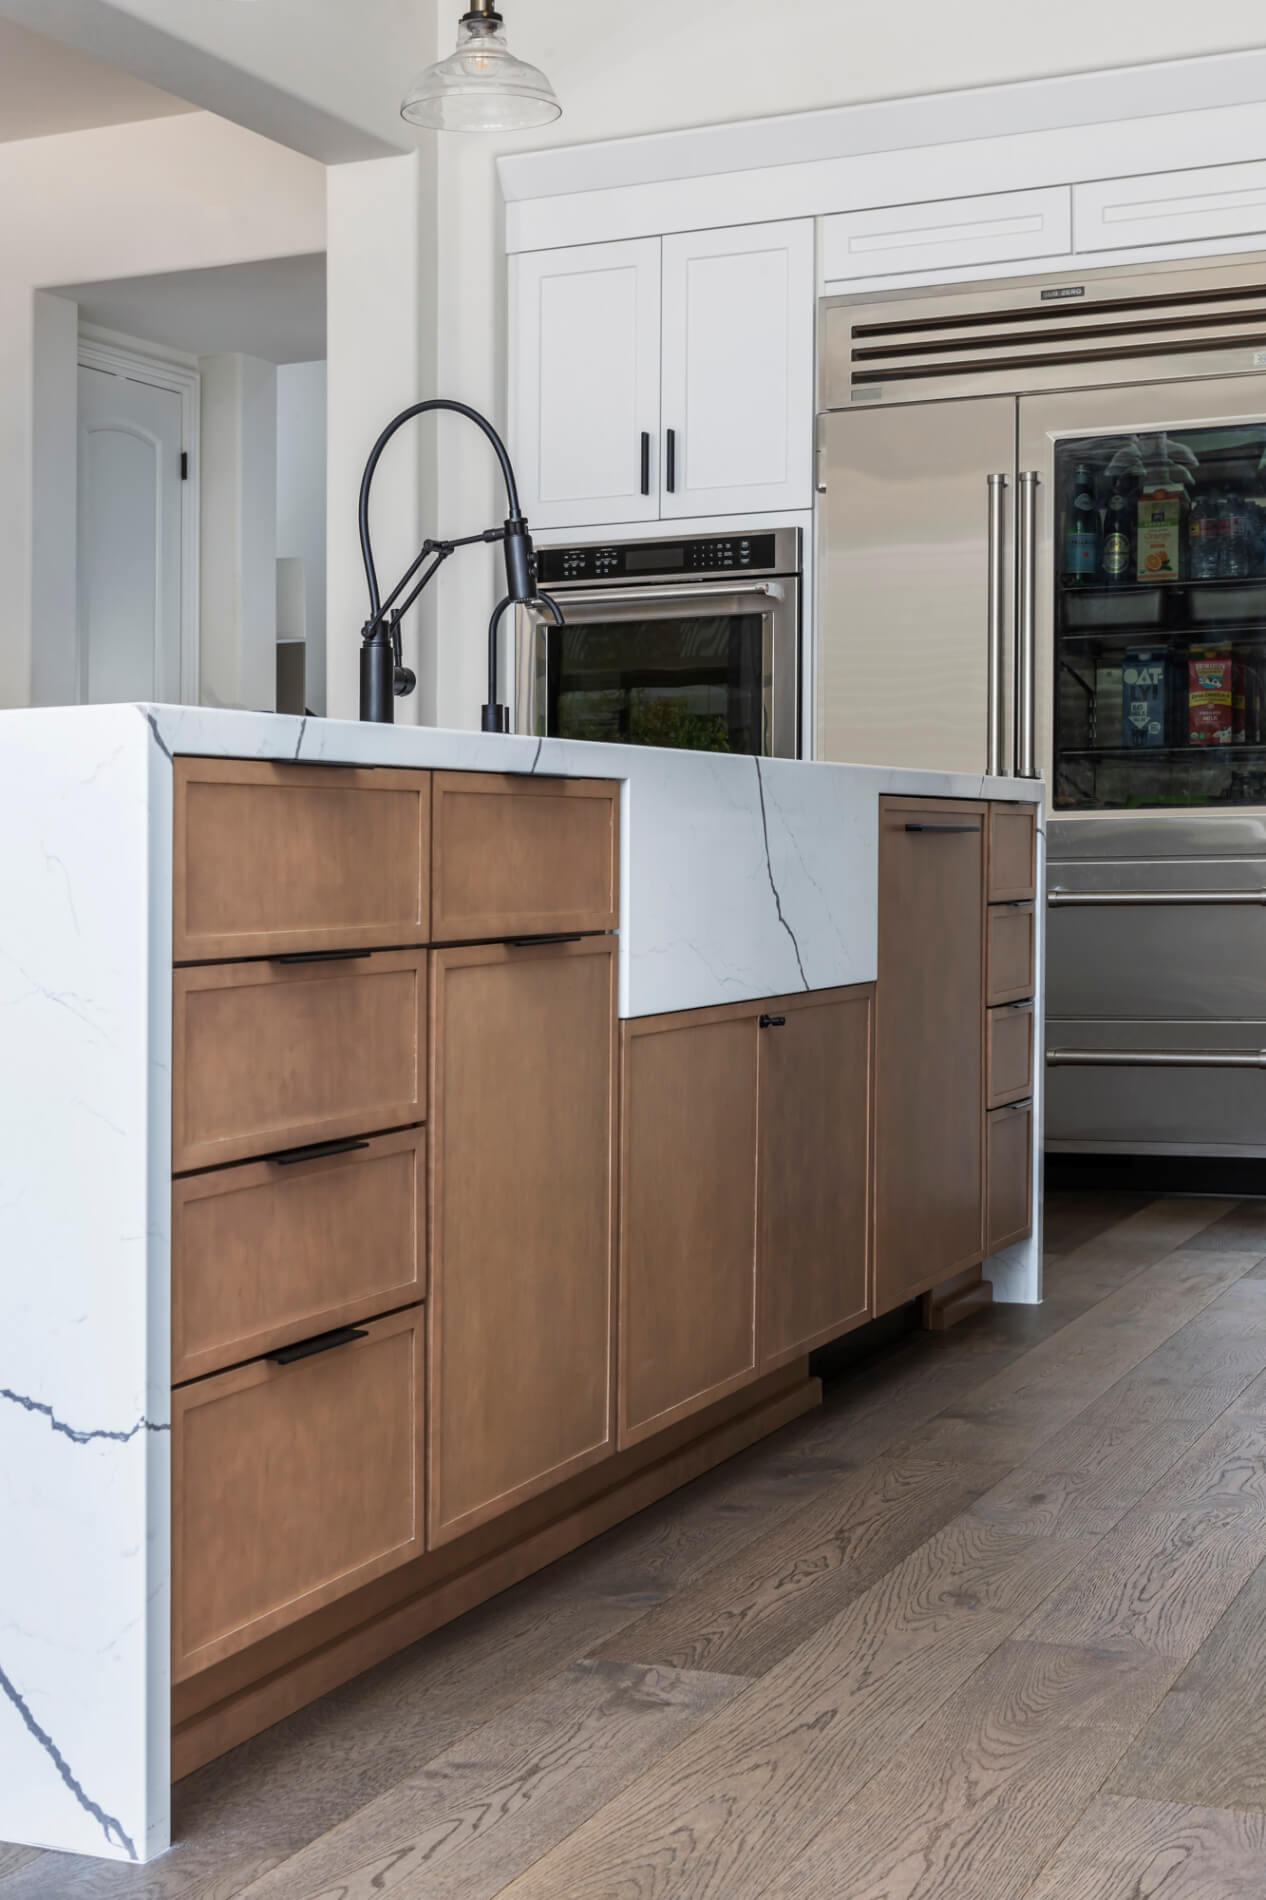 Built-in-dishwasher with undermounted sink